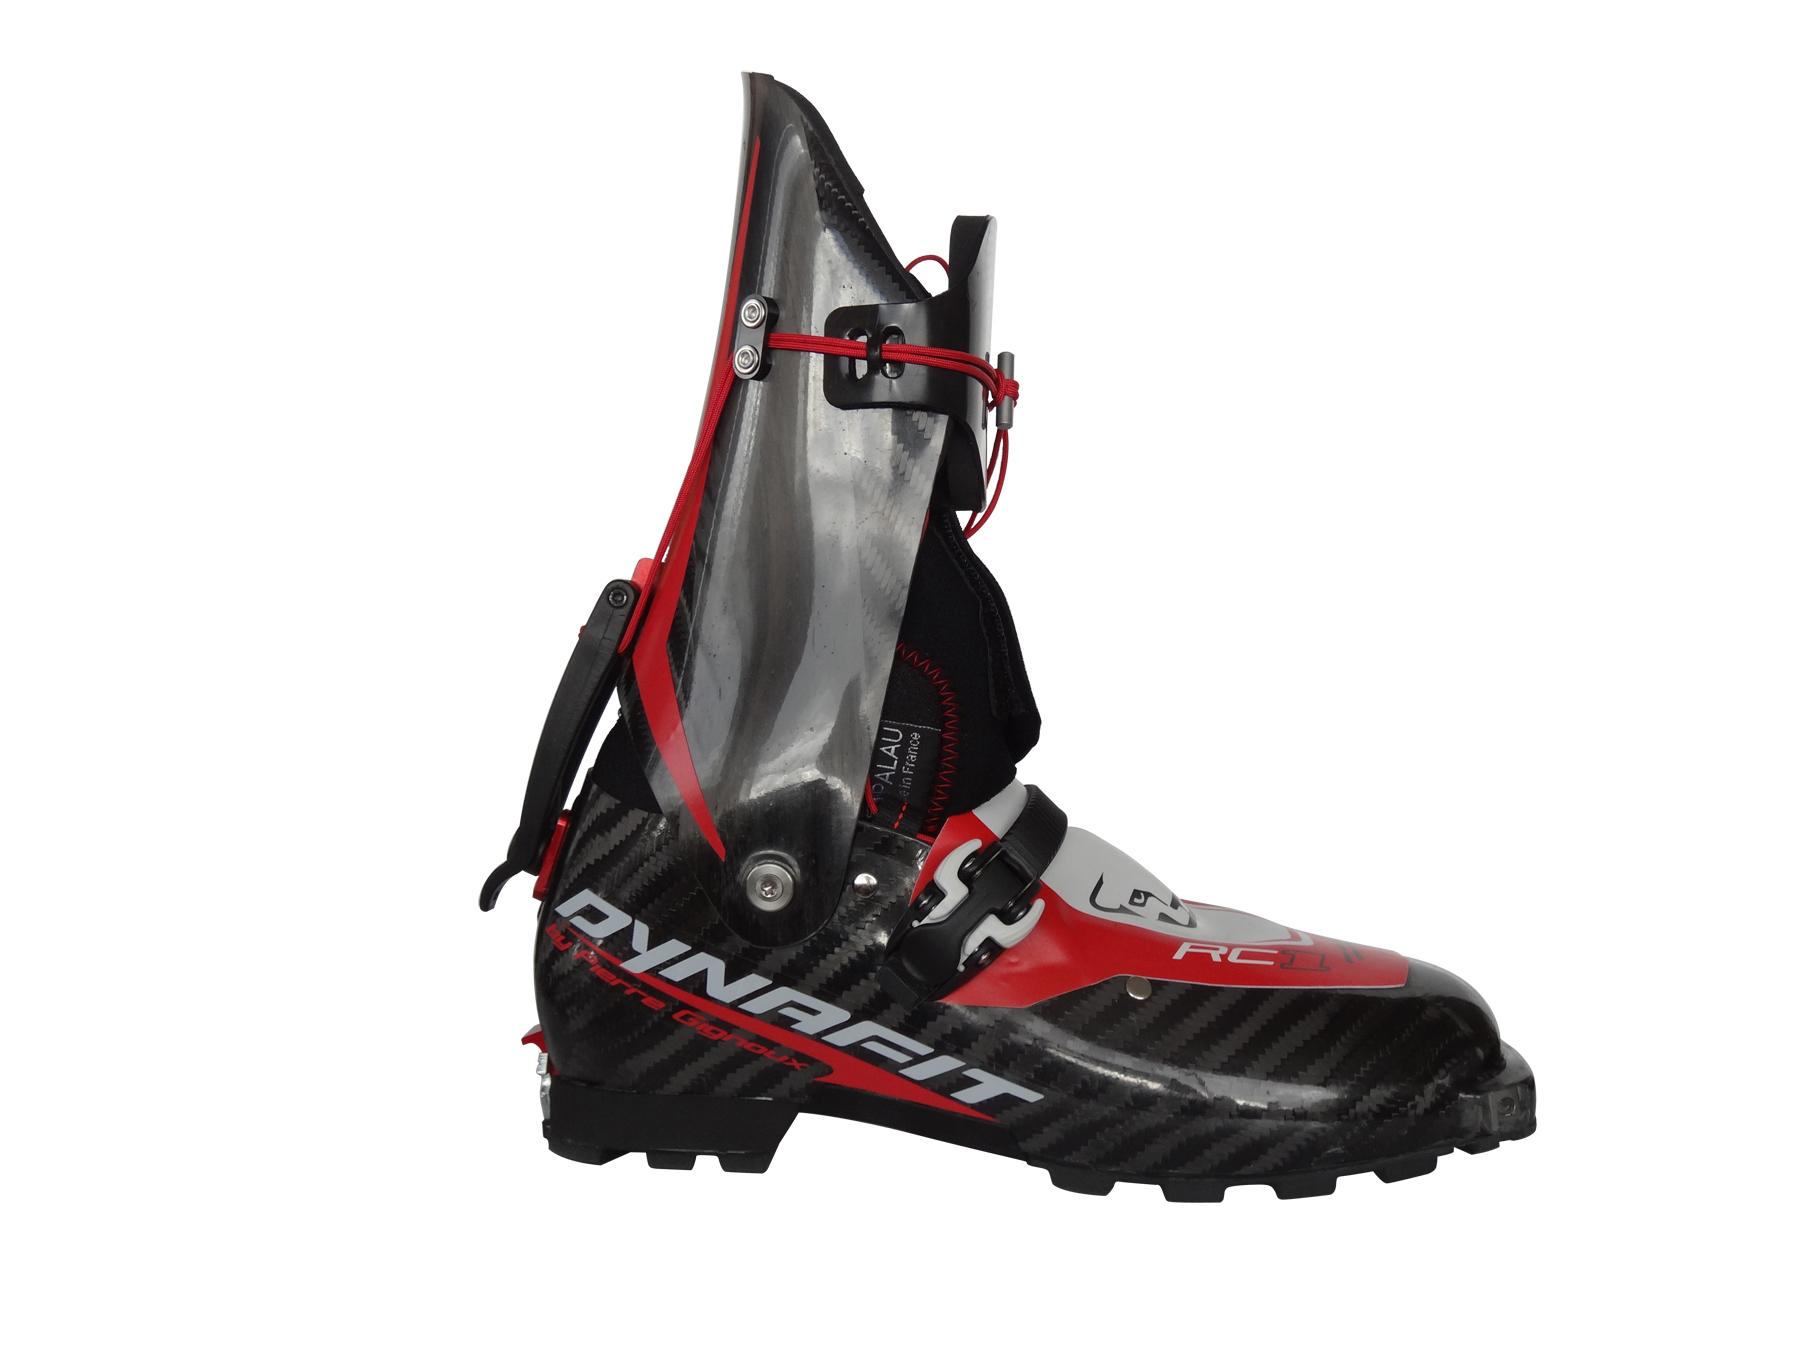 RC 1 carbon boot